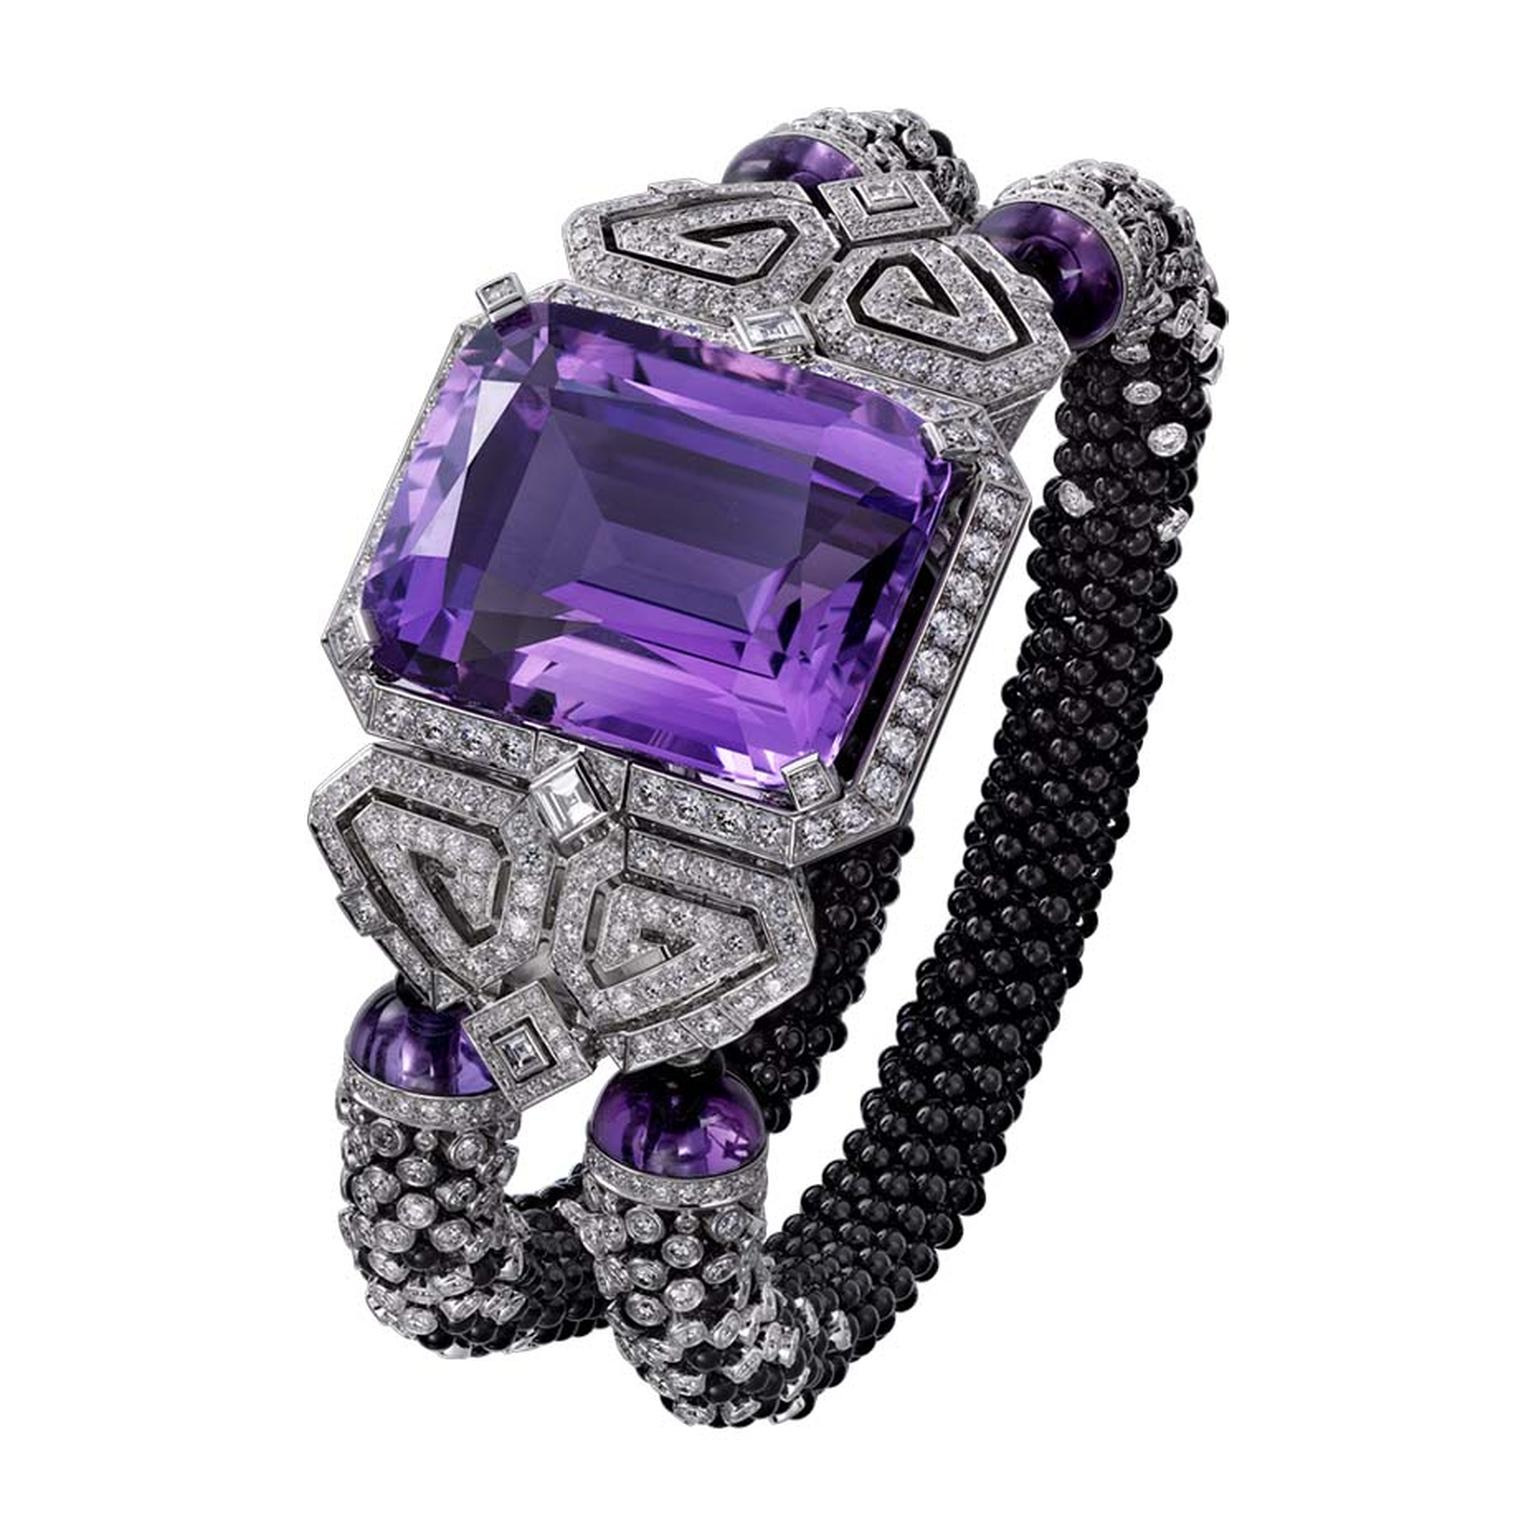 Cartier Purple high jewellery secret watch has two curved scrolls set with onyx and diamonds, which sustain the two diamond and onyx beaded bracelets.